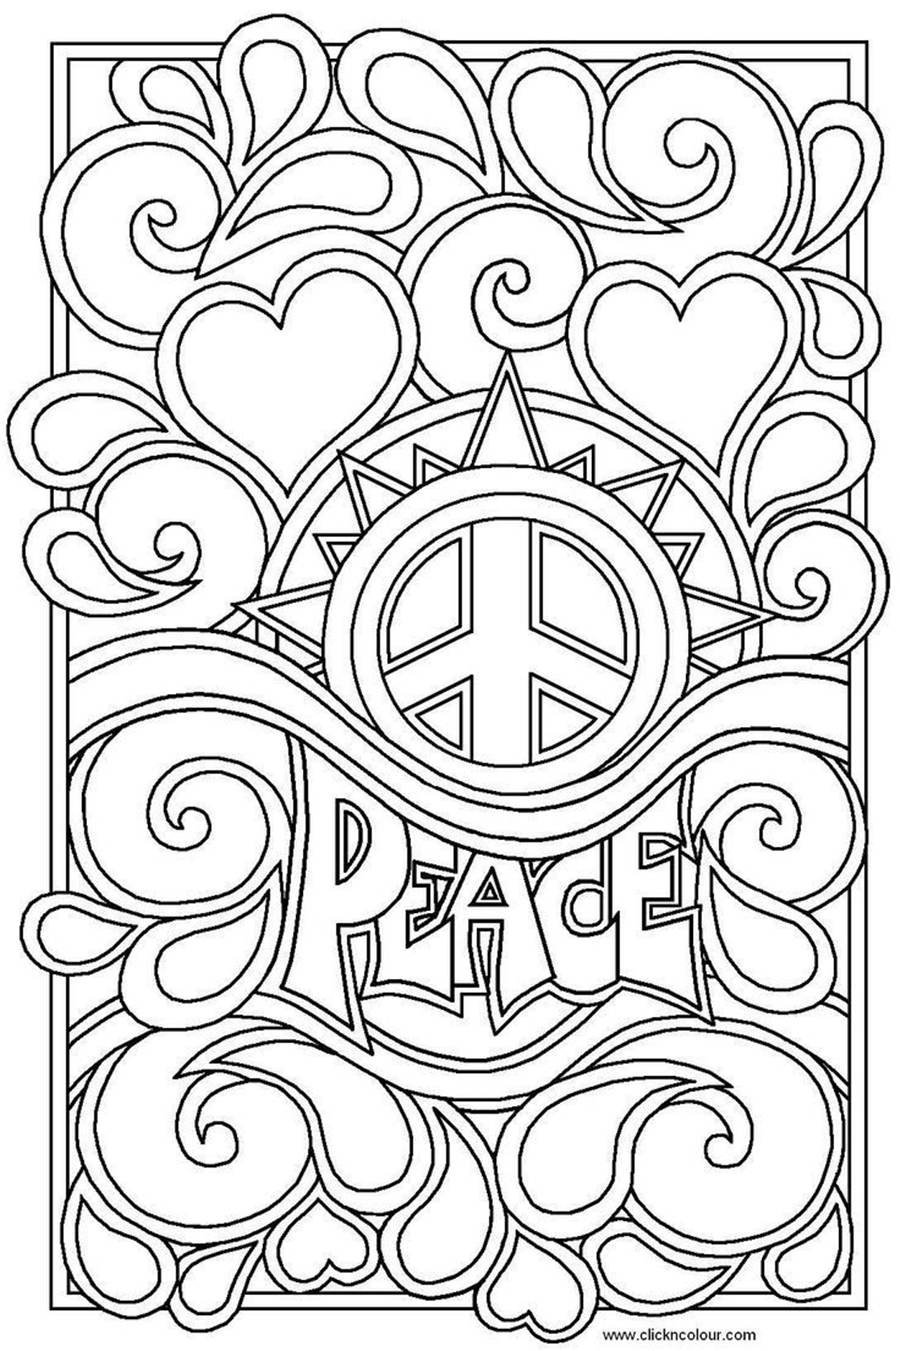 Free Kids Respect Coloring Pages Elegant Easy Drawings - Kidcolorings - Free Printable Coloring Pages On Respect